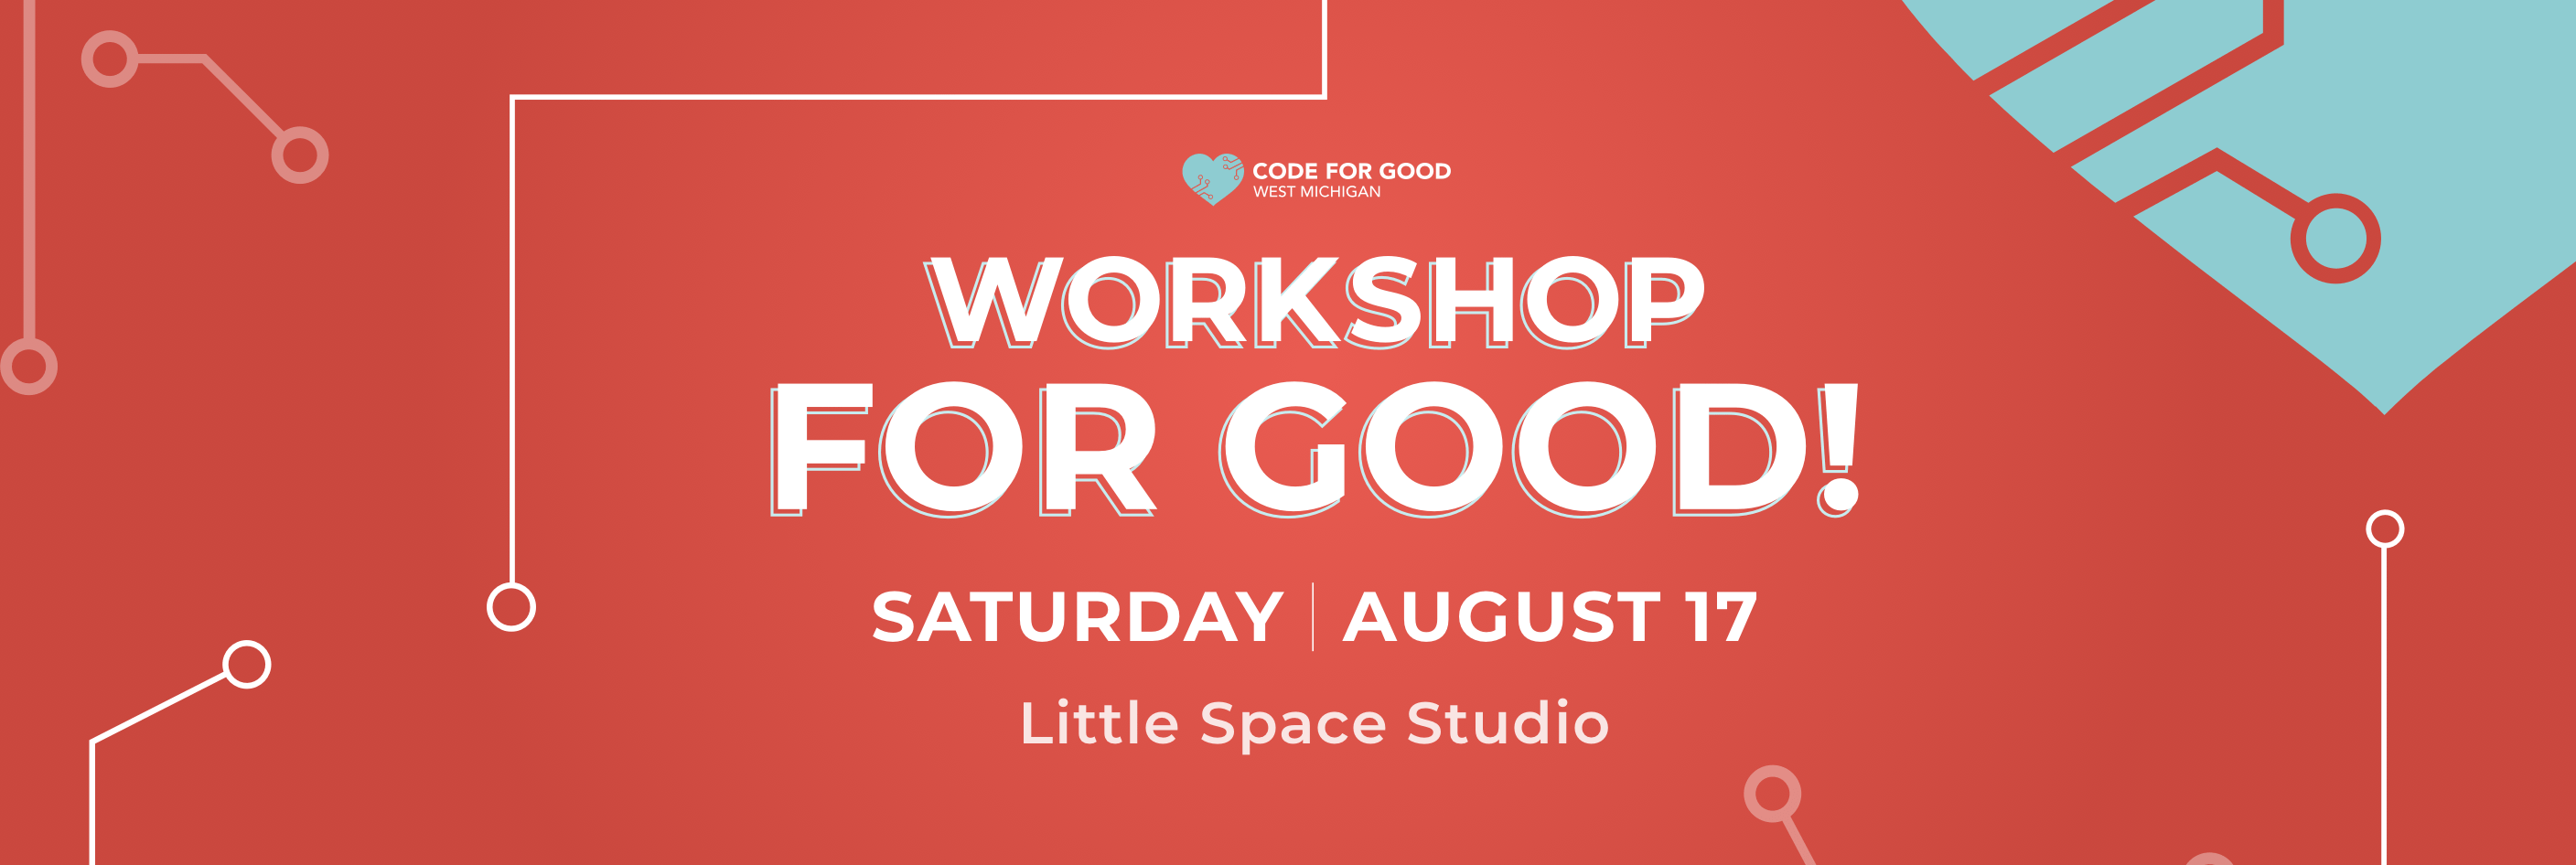 Workshop for Good